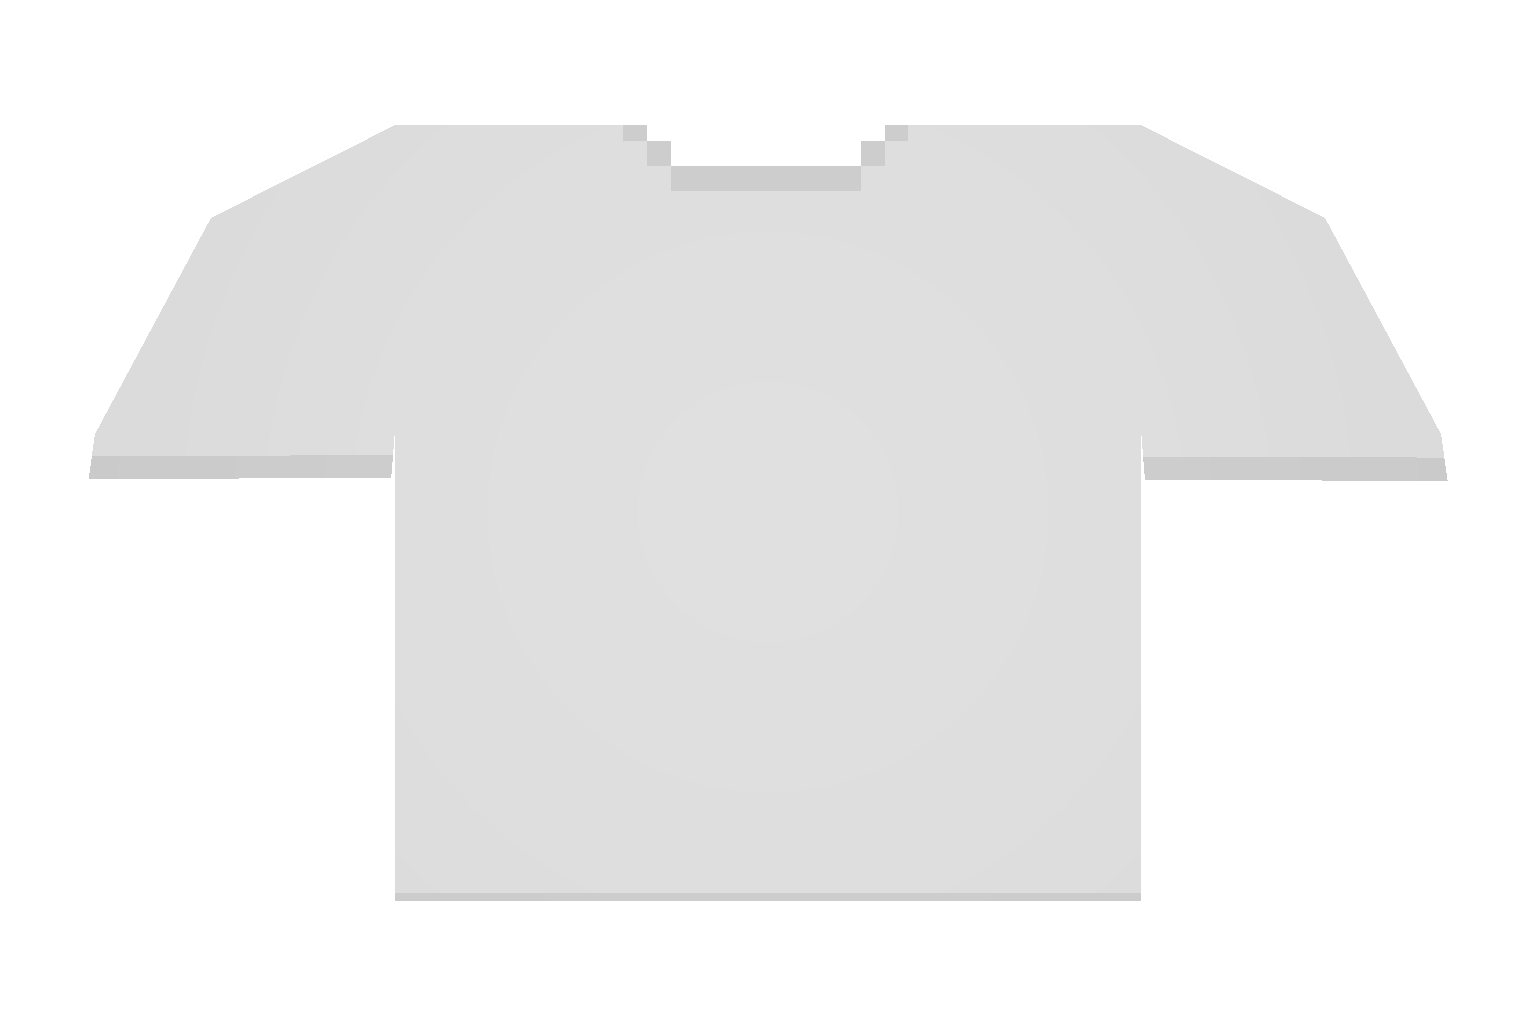 Picture of Unturned Item: White Shirt